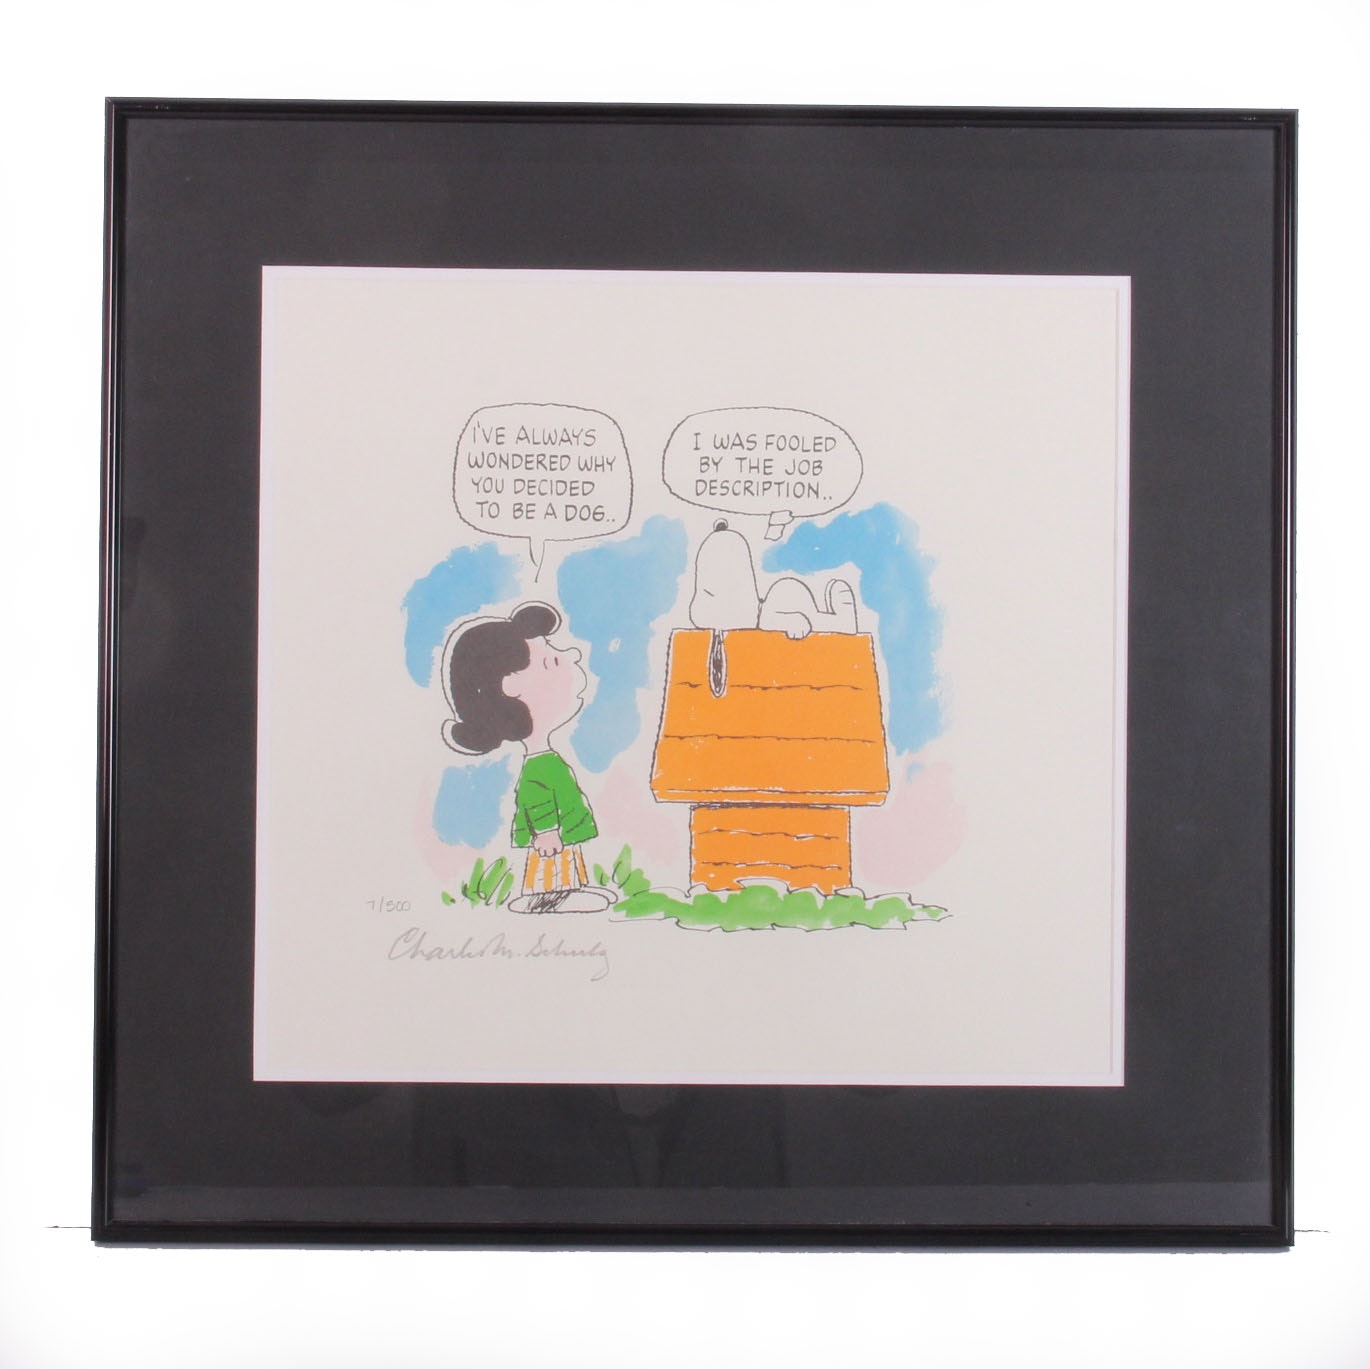 "S & S Auto Sales >> Signed Limited Edition Charles Schulz Lithograph ""Wanted: Man's Best Friend"" : EBTH"